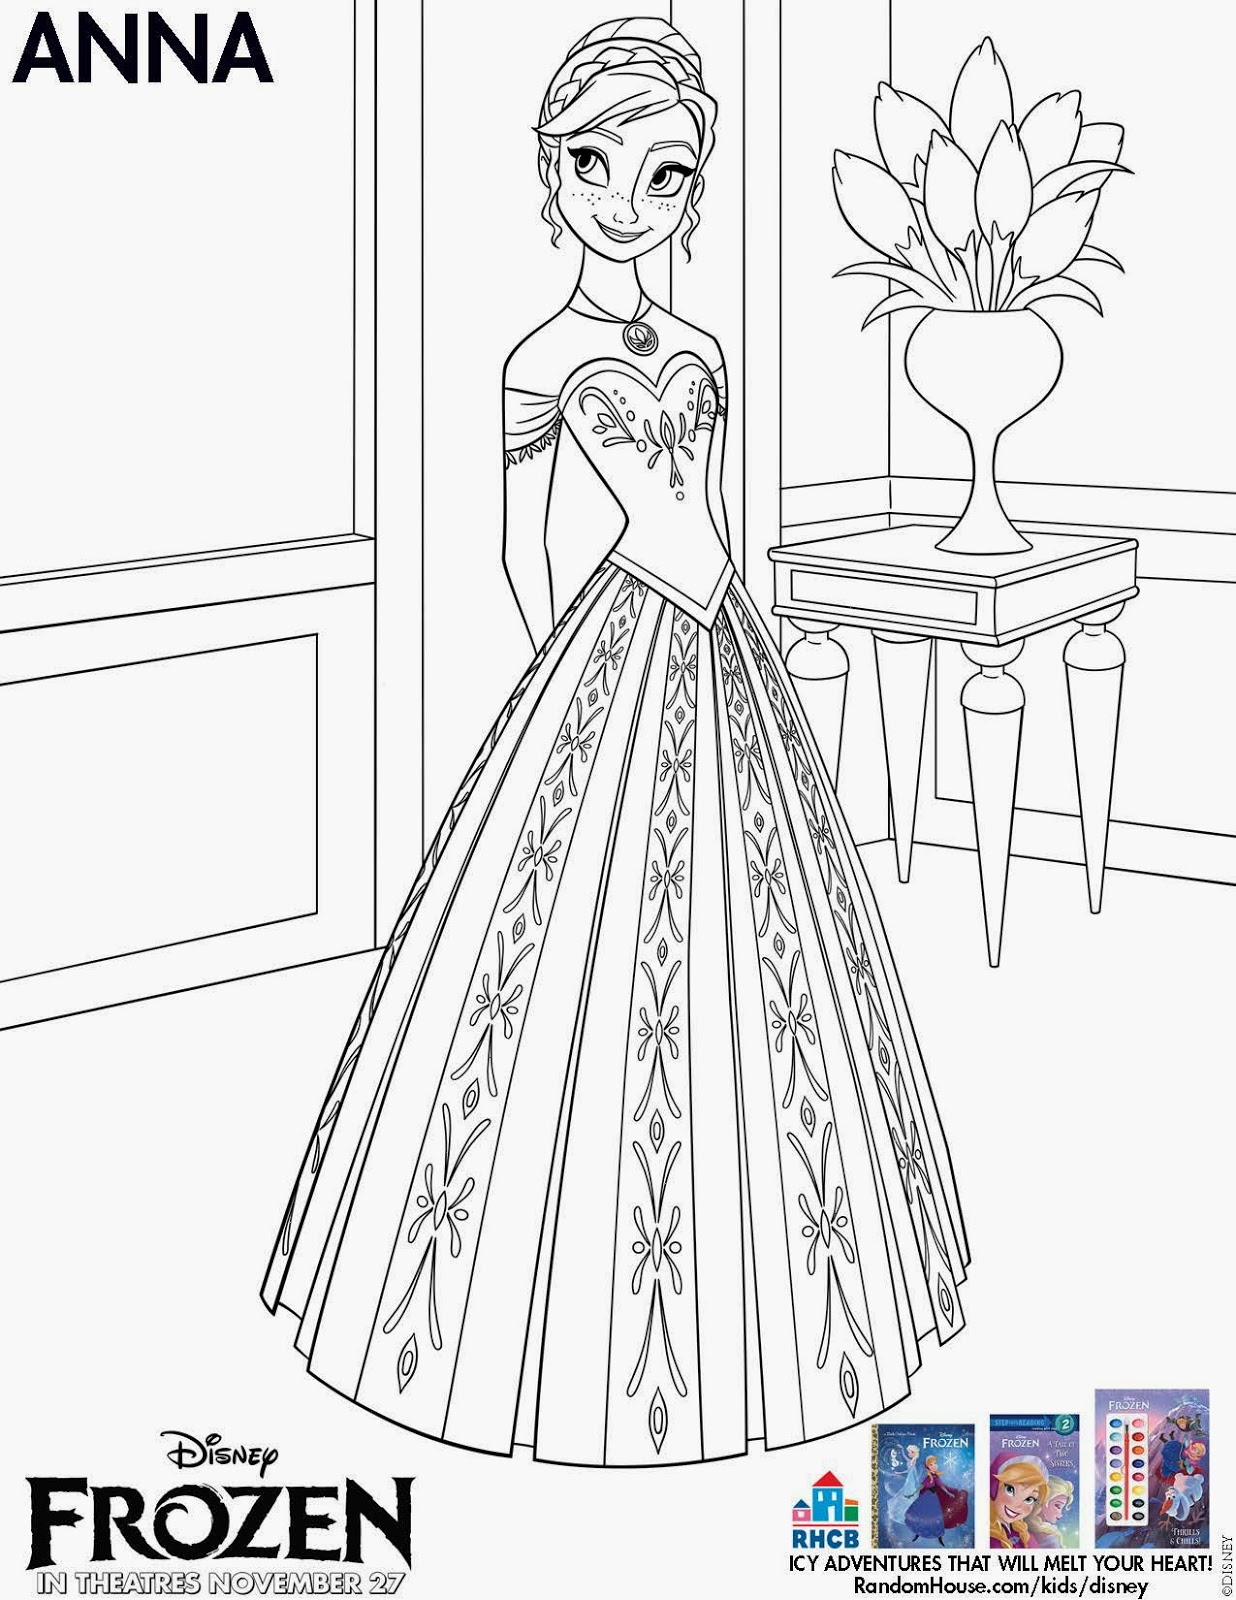 So In Celebration Of The Release Frozen On DVD And Blu Ray March 18th Here Are Some Fun Coloring Sheets Just Click Image Download